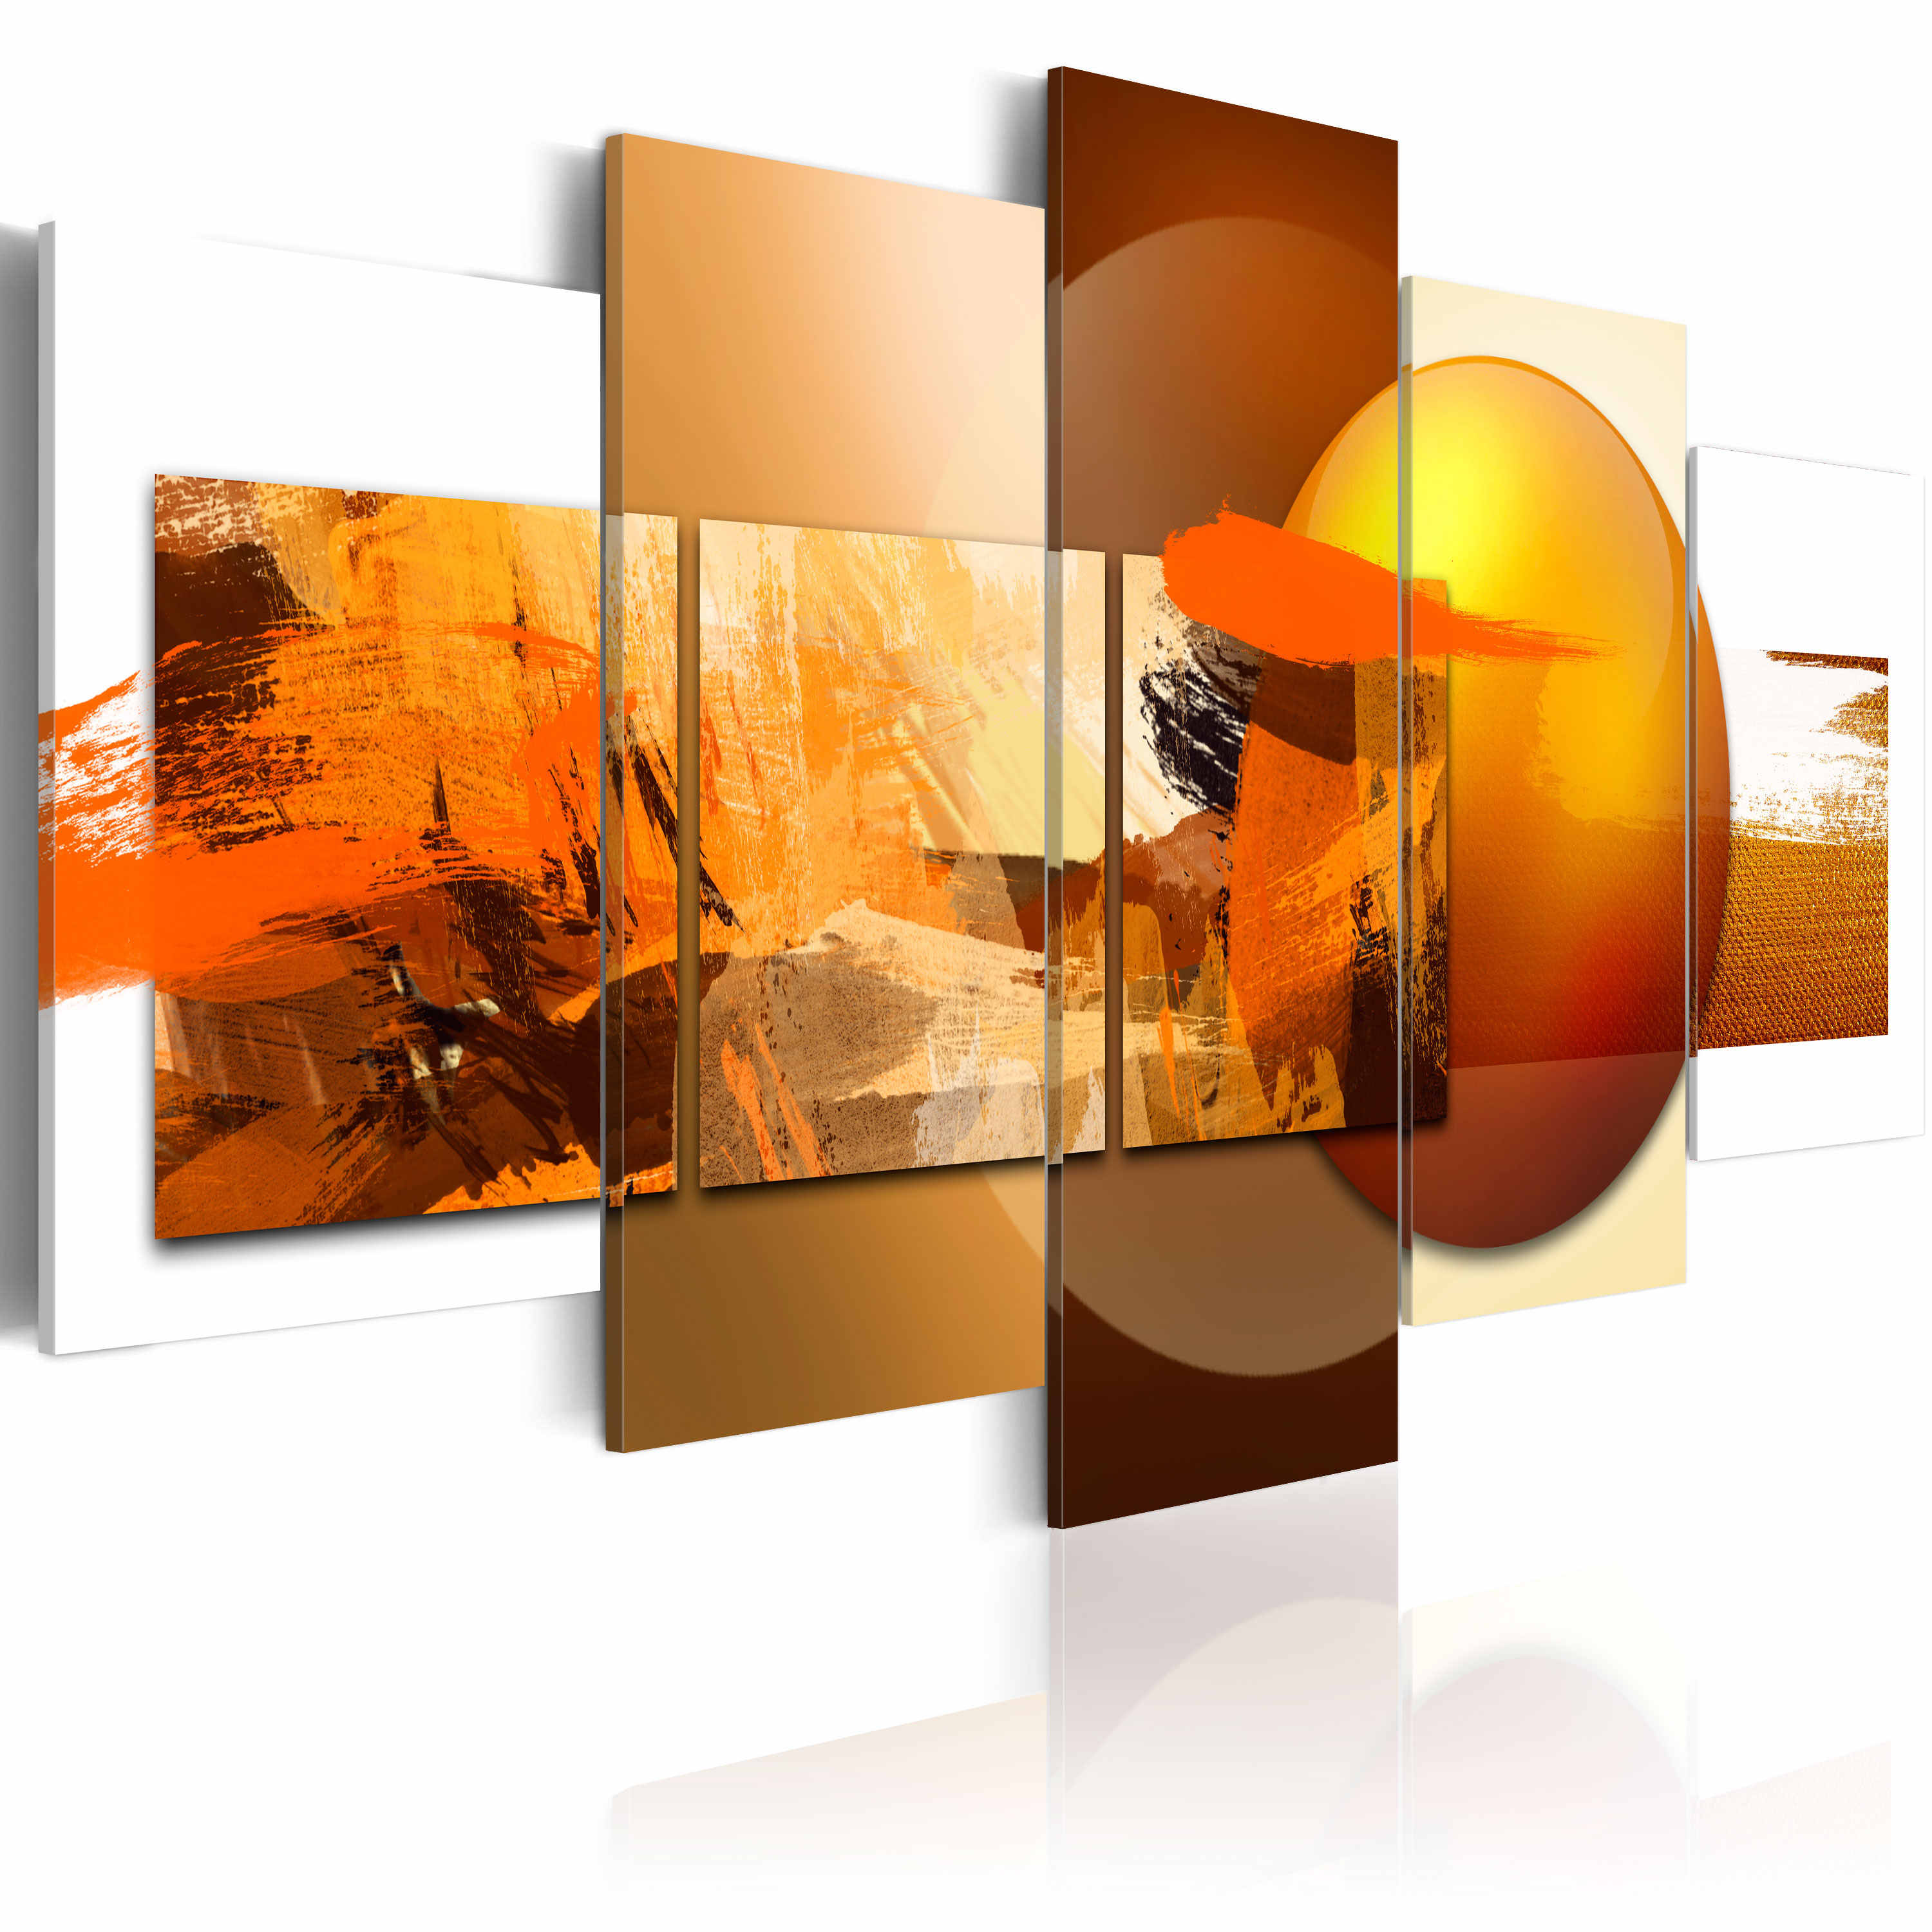 5 pieces/set Abstract poster Picture Print Painting On Canvas Wall Art Home Decor Living Room Canvas Art PJMT-B (144)